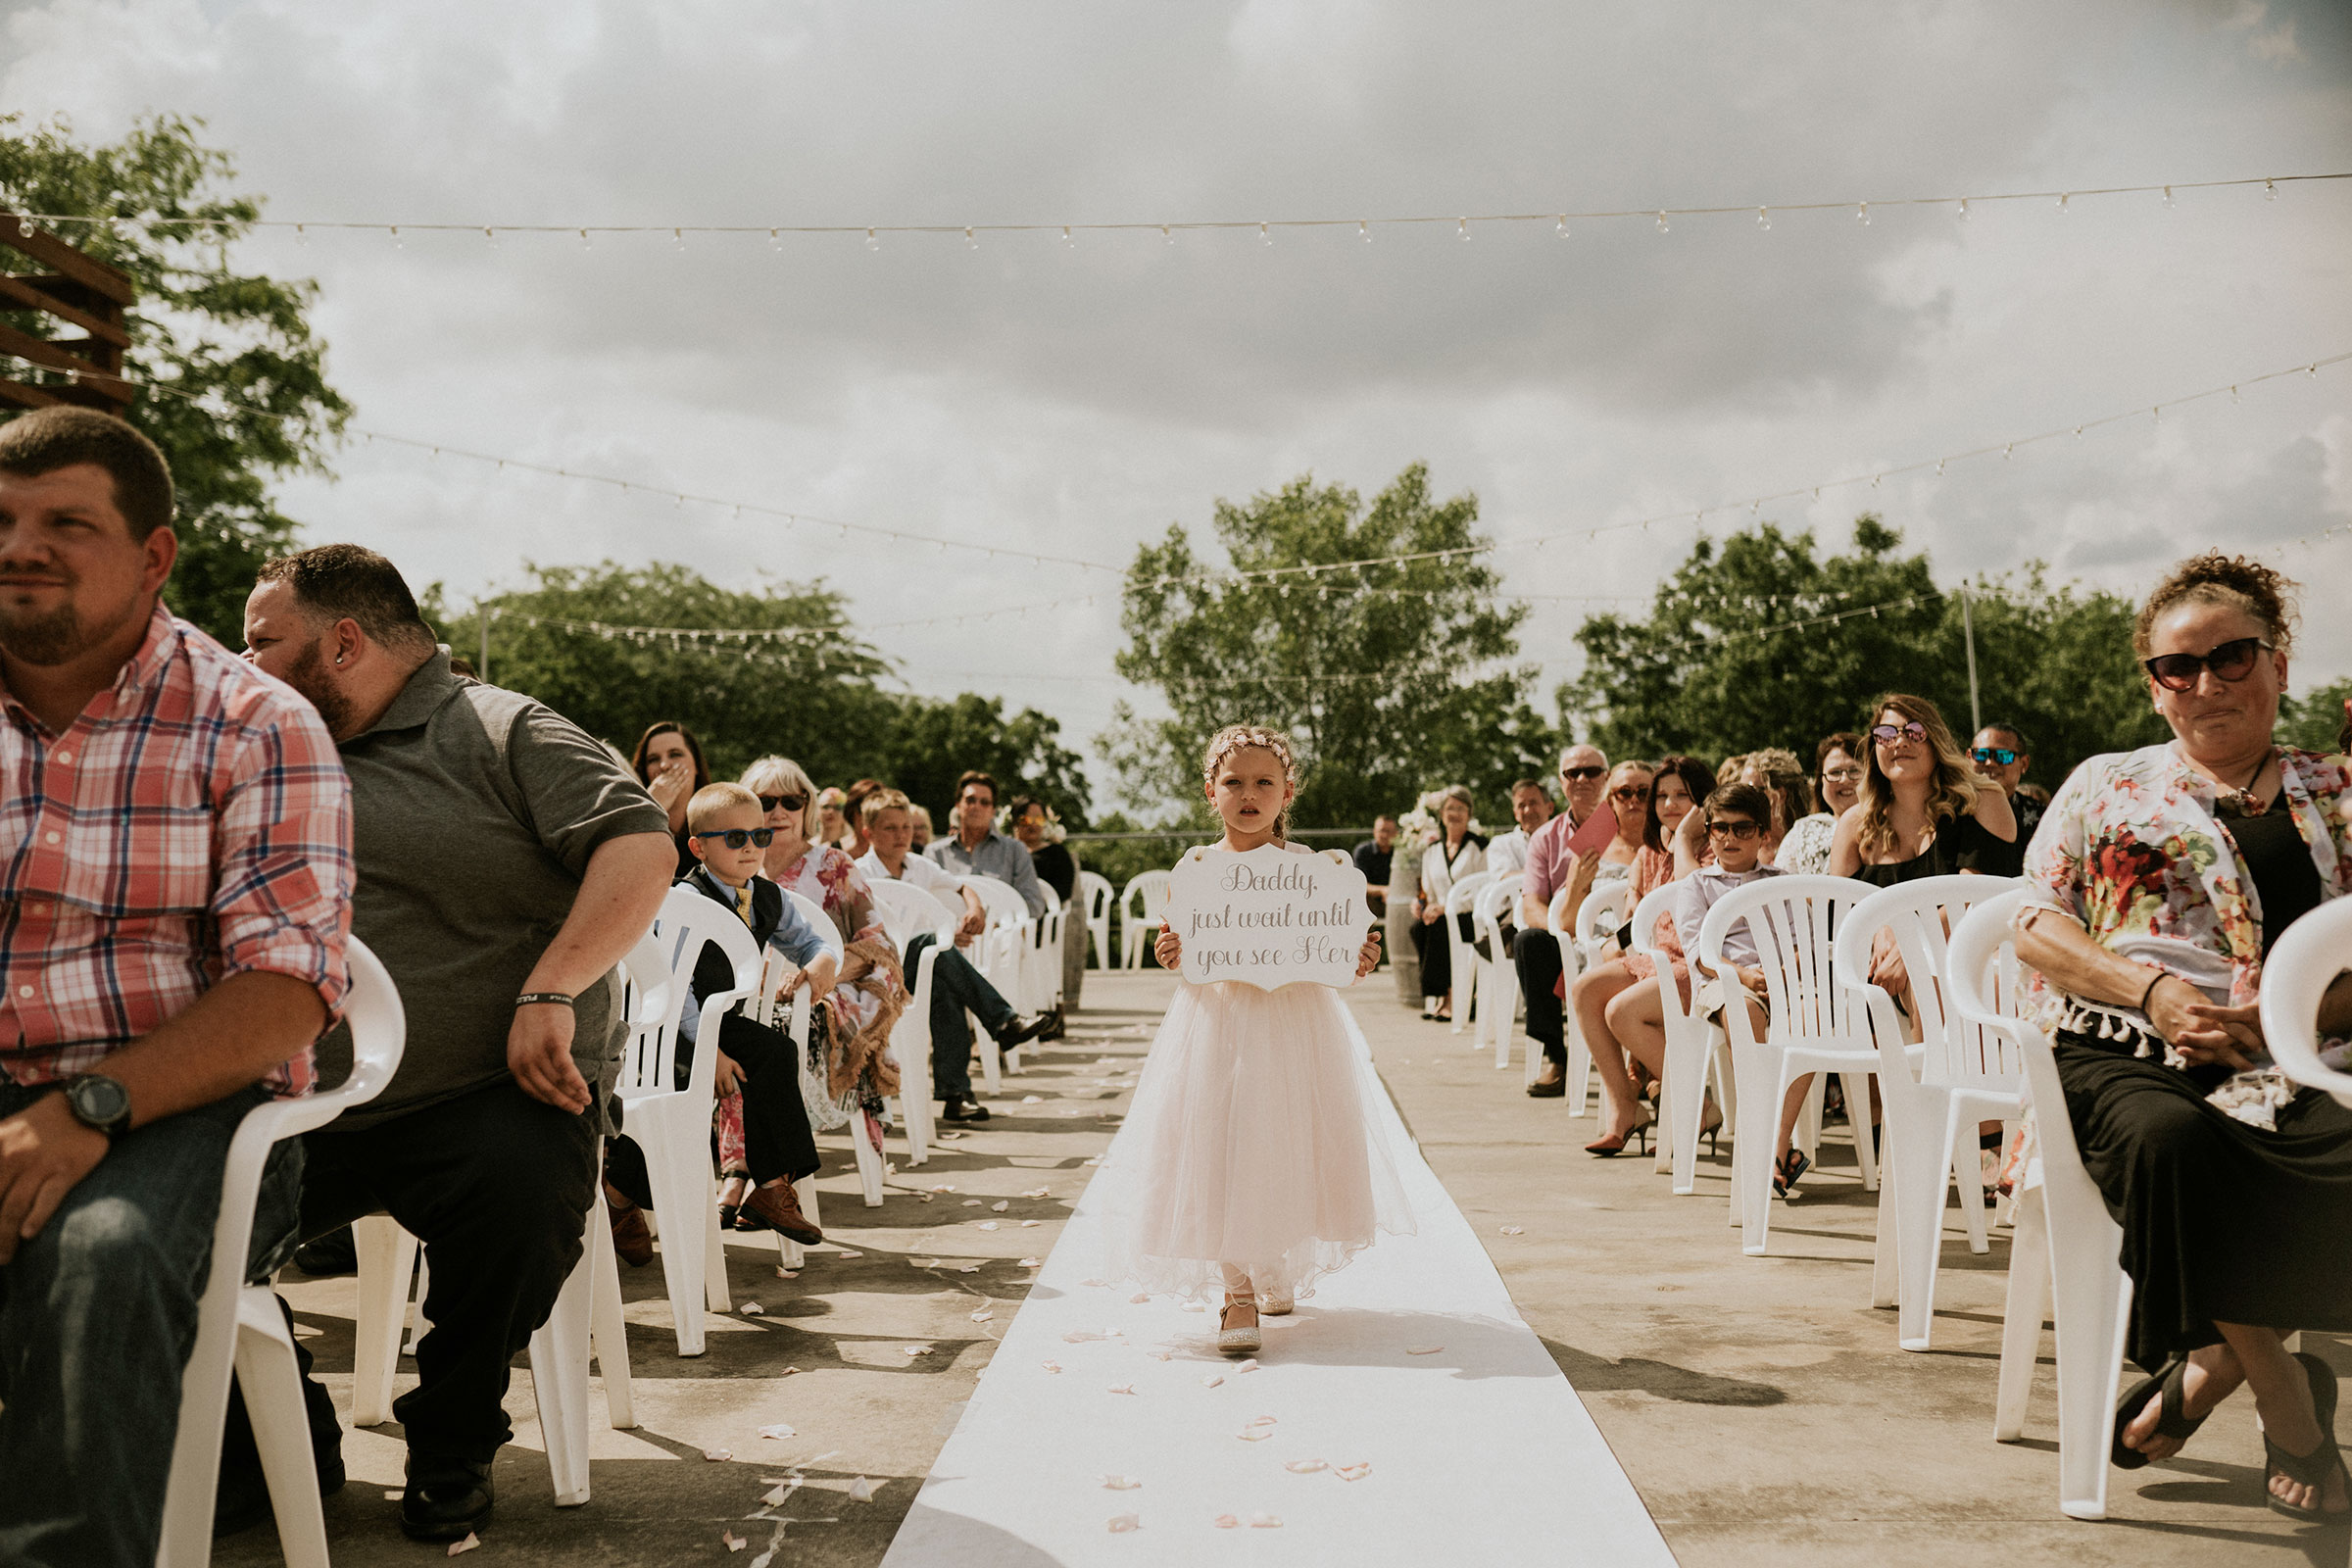 daughter-walking-down-aisle-with-sign-summerset-winery-indianola-iowa-raelyn-ramey-photography.jpg